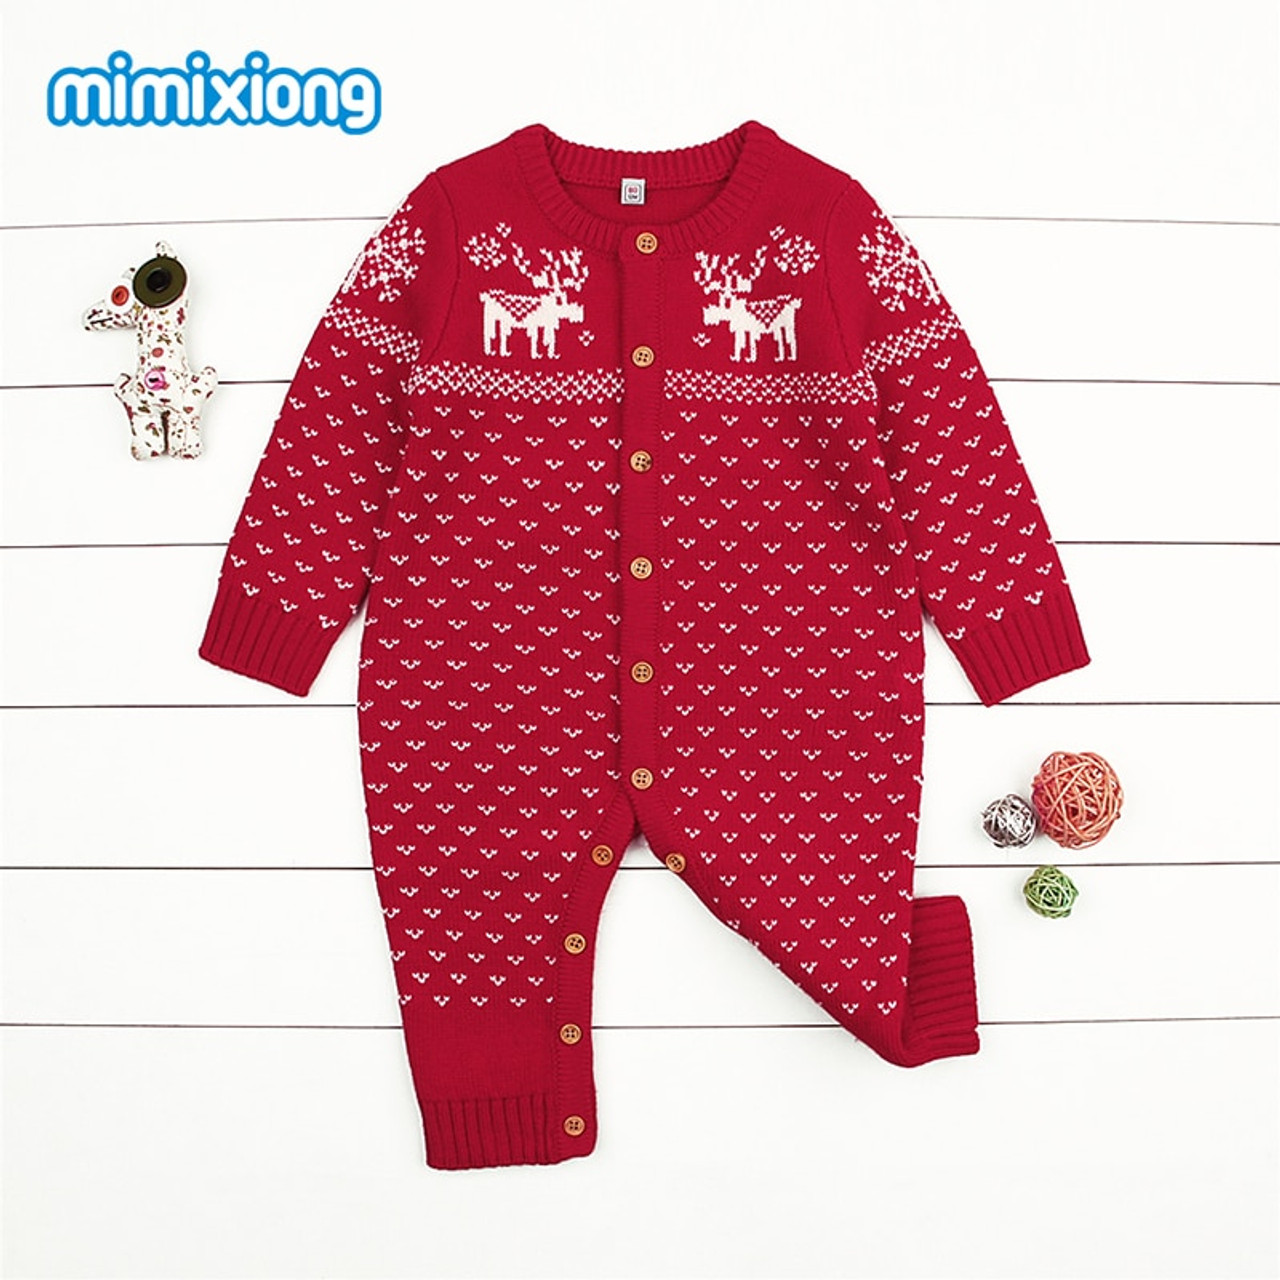 mimixiong Baby Christmas Sweater Toddler Reindeer Outfit Red Clothes